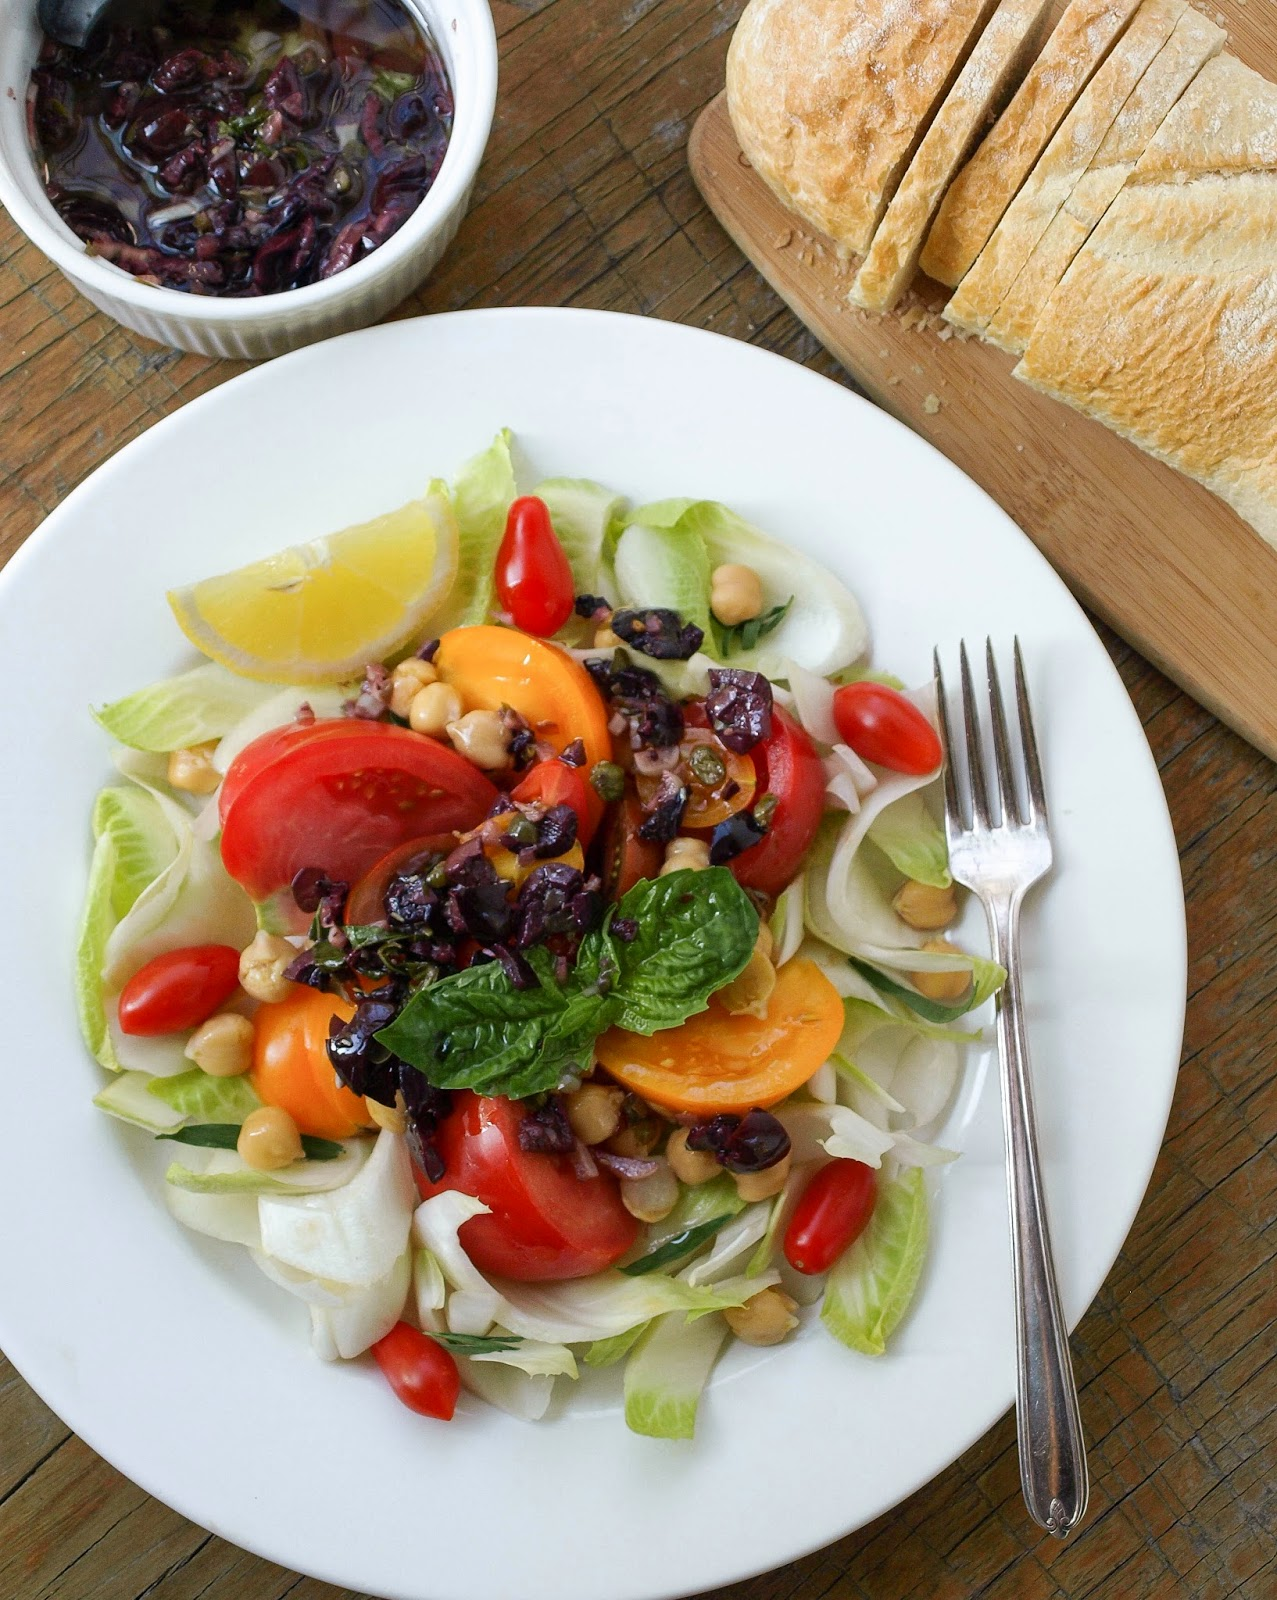 THE SIMPLE VEGANISTA: Heirloom Tomato Salad + Olive Bagna Cauda